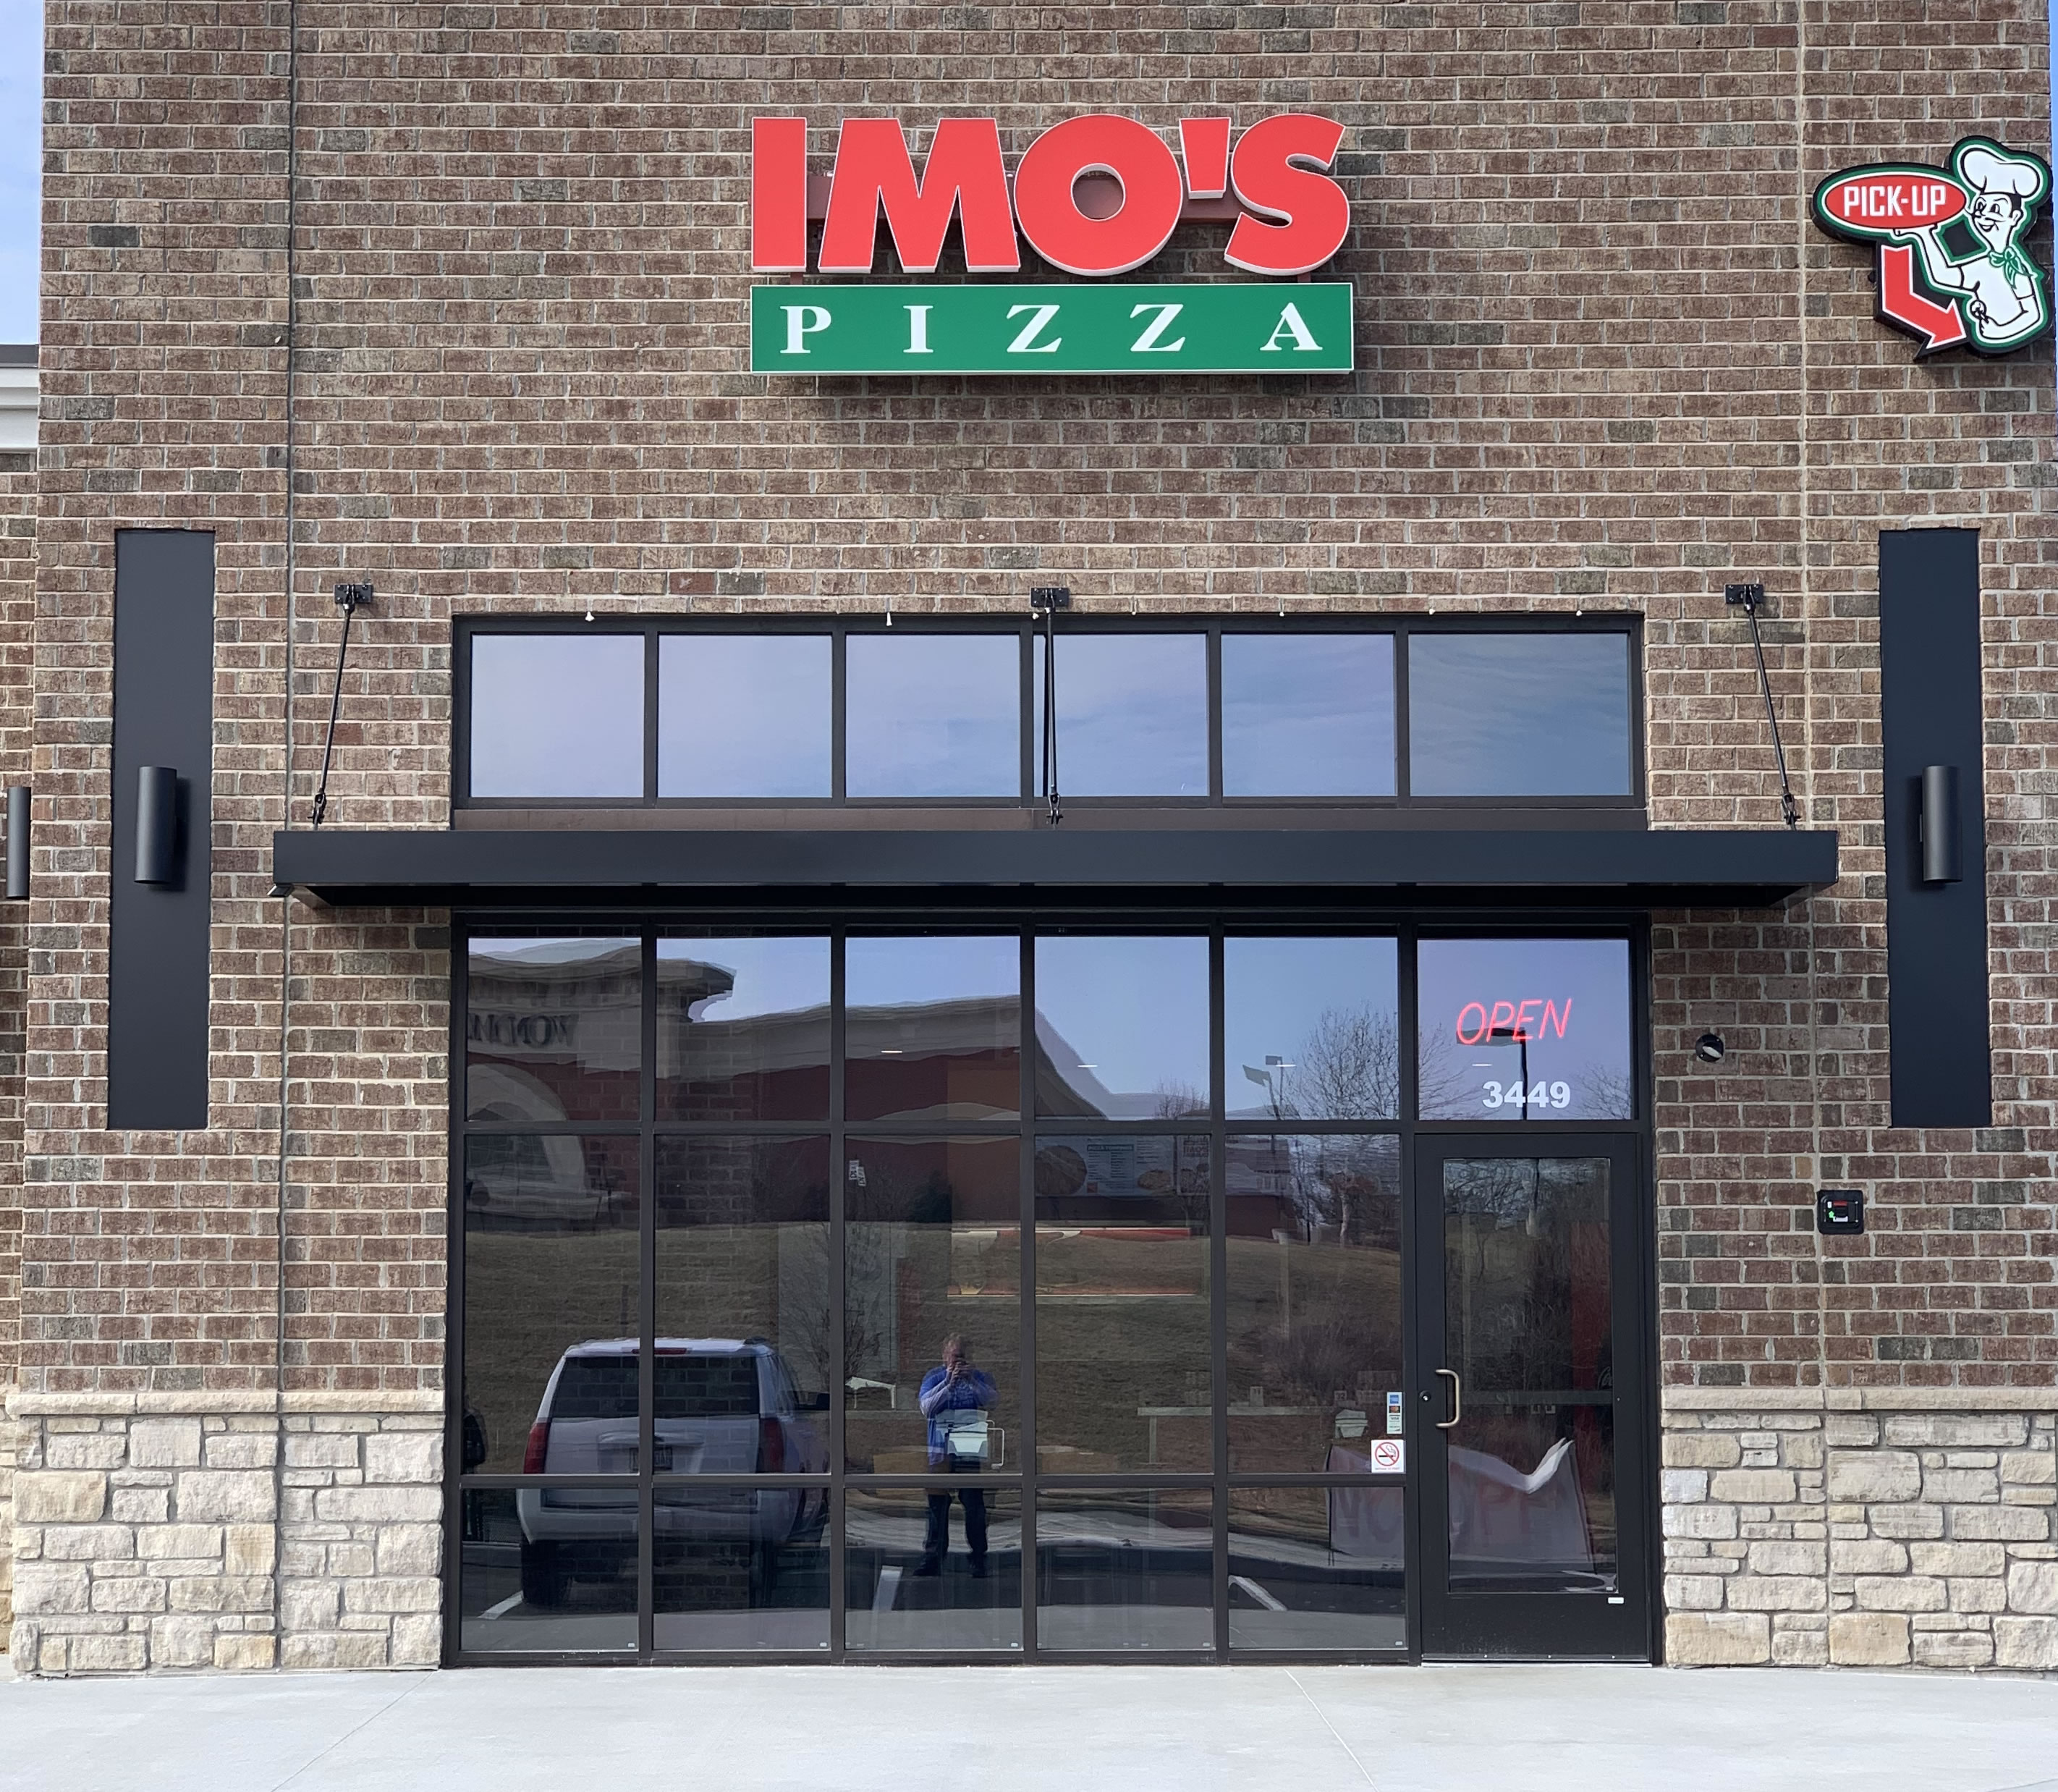 Imo's Pizza Lake St Louis